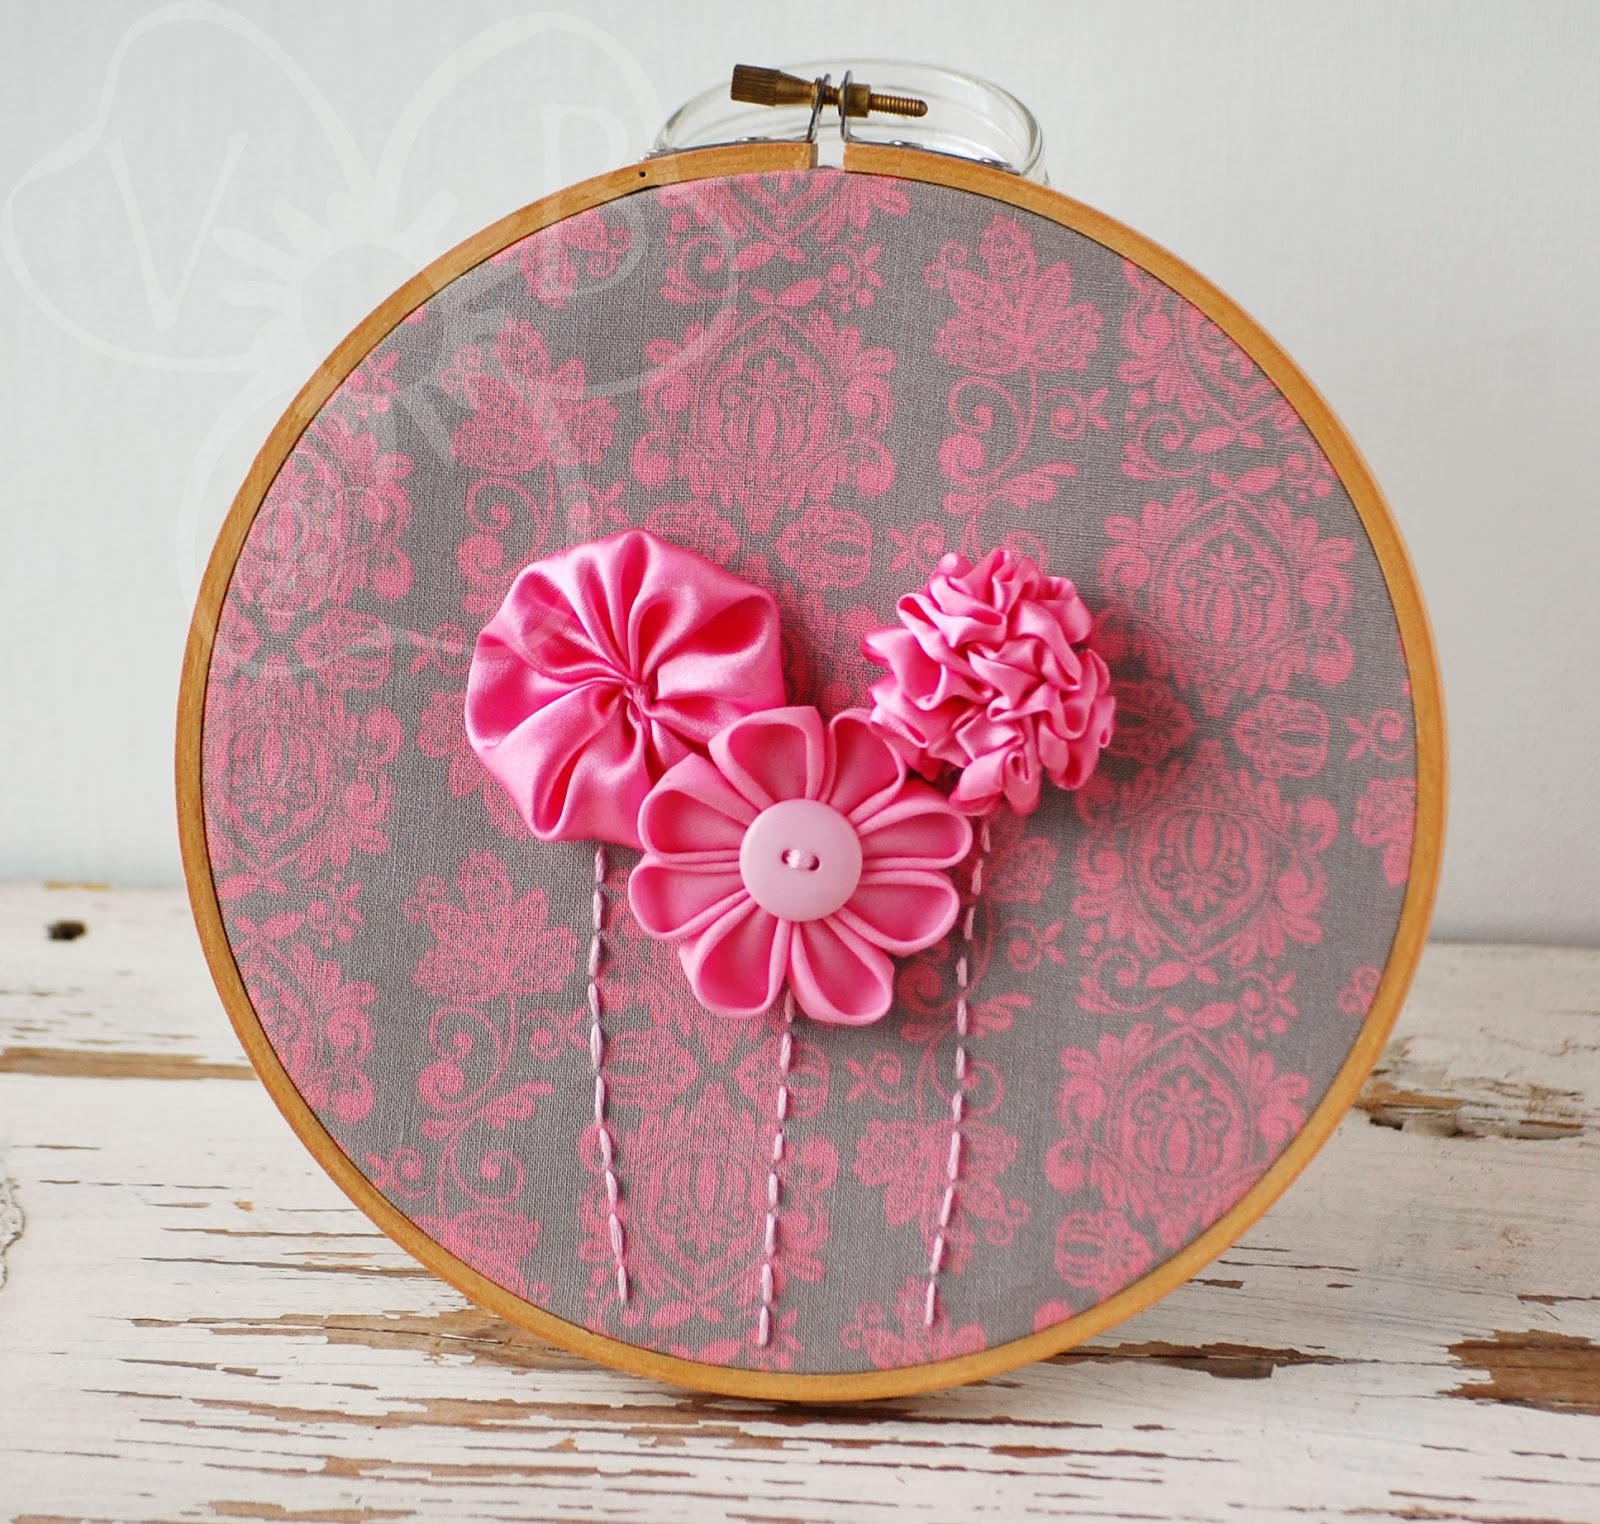 http://violetsbuds.storenvy.com/collections/500953-hoop-art/products/4618228-pink-bouquet-handmade-flower-hoop-art